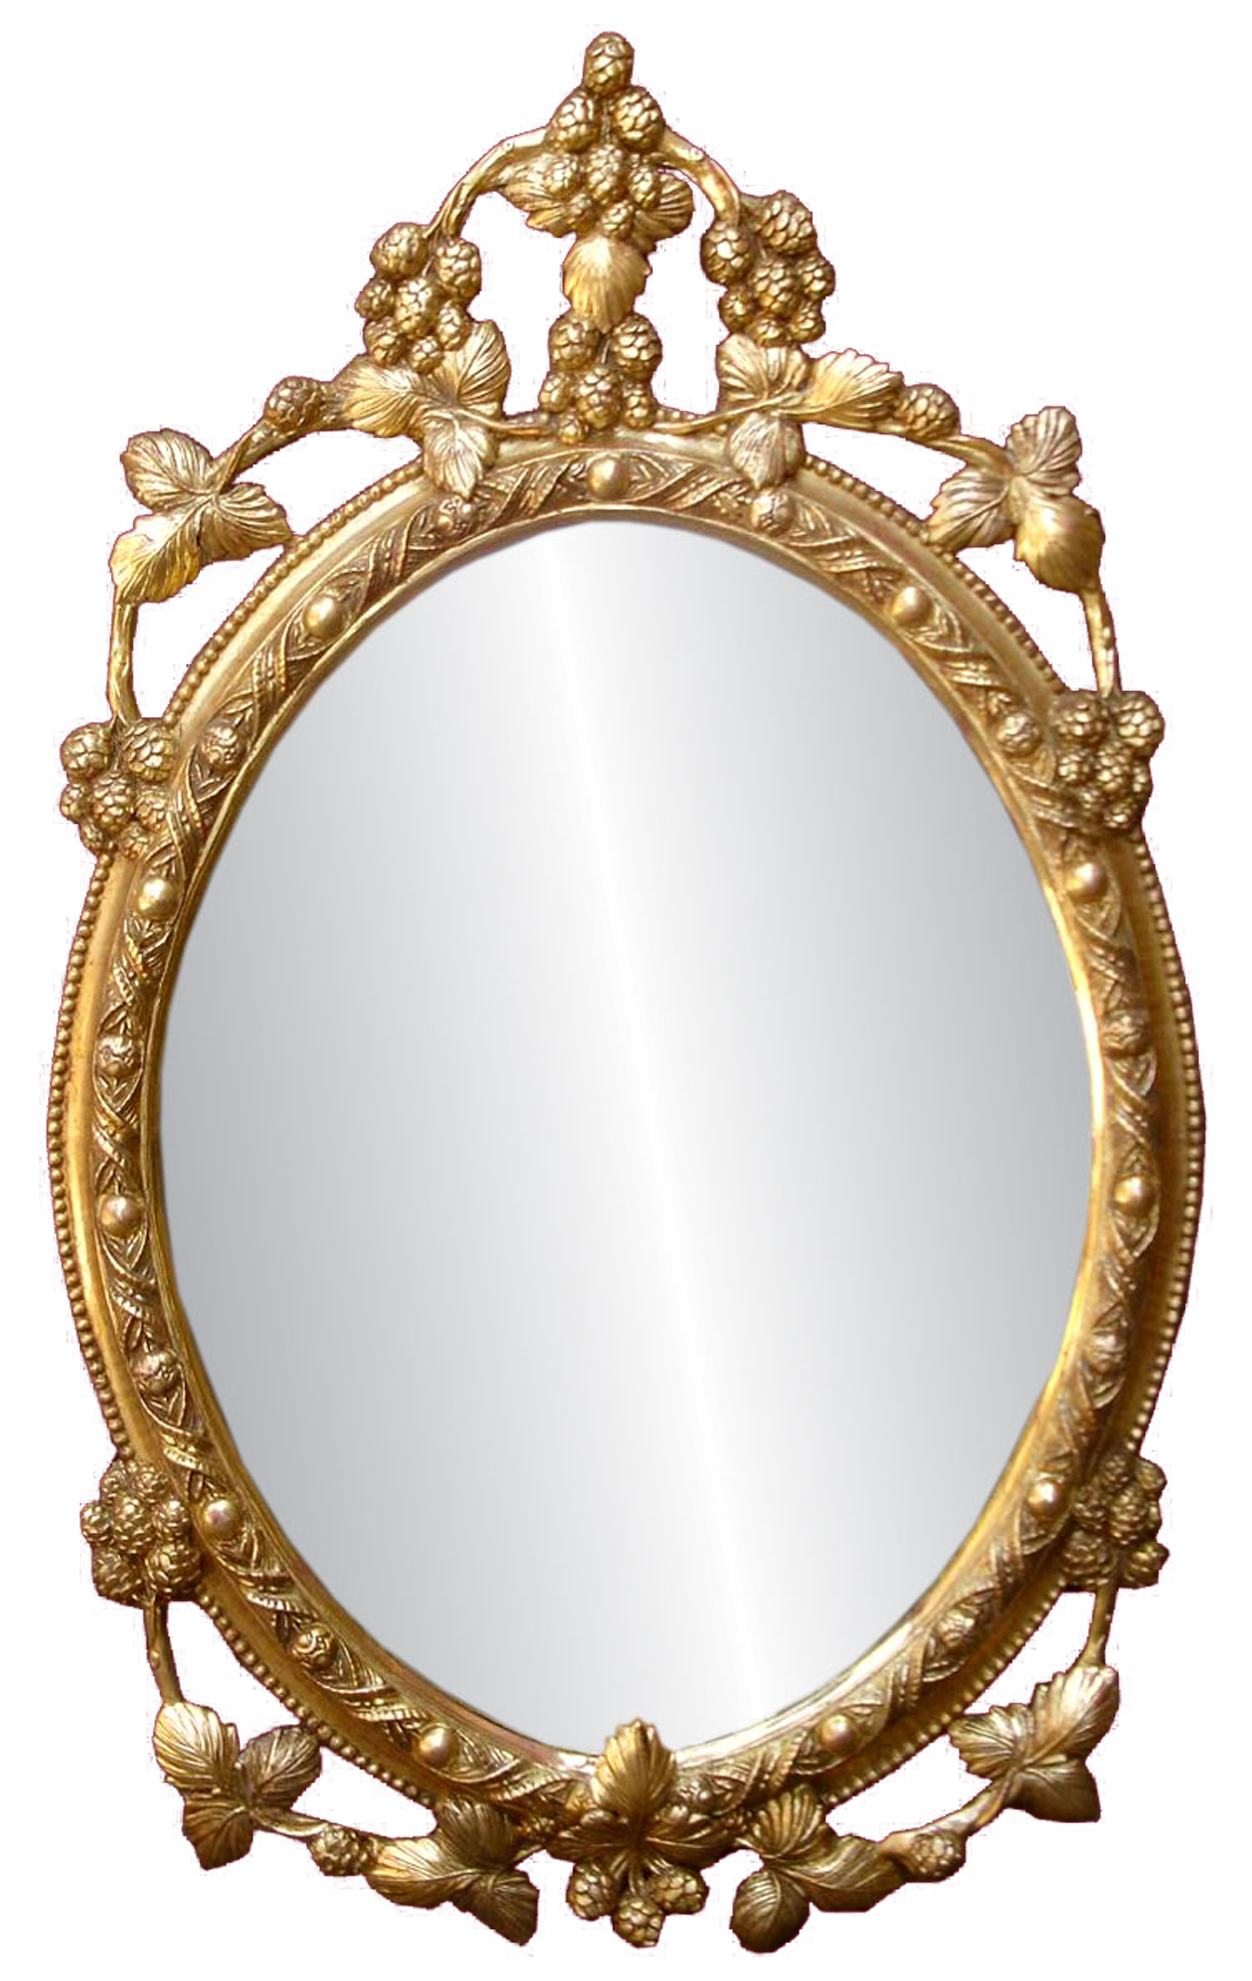 D free images at. Woman clipart mirror clipart free download